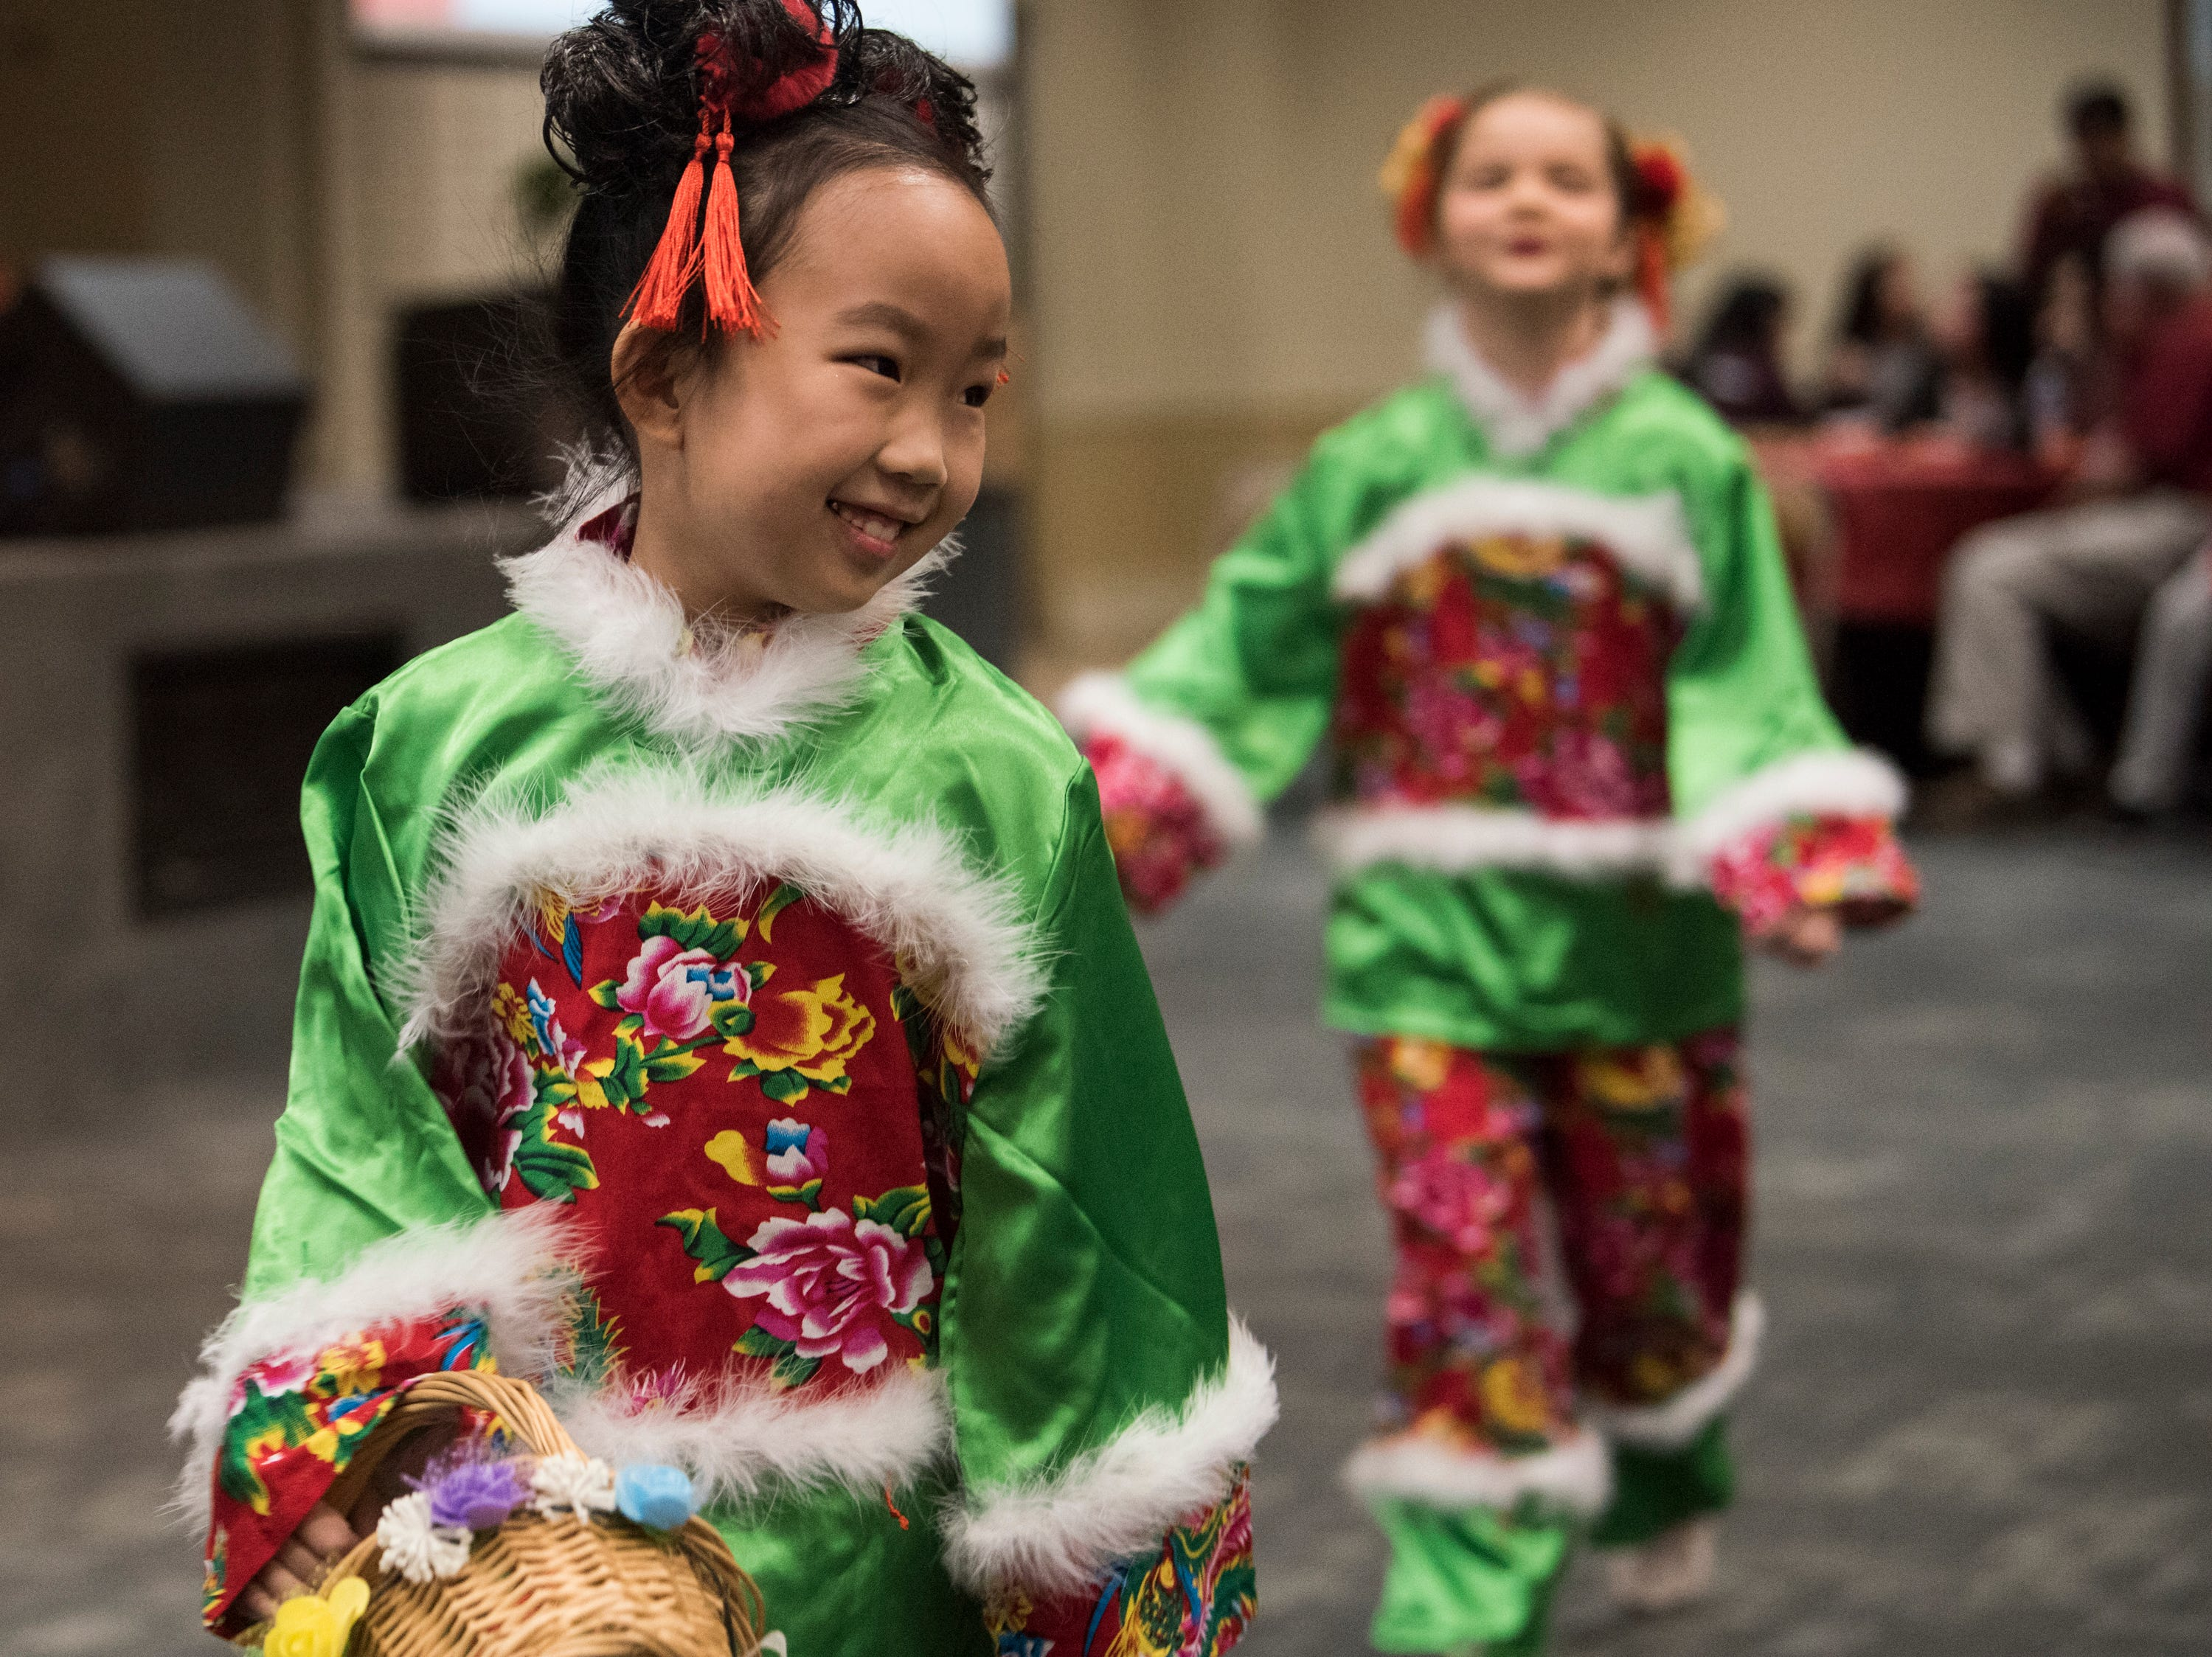 The Mushroom girls perform during the Central Alabama Association of Chinese 2019 Montgomery Chinese New Year festsival at Frazer Church in Montgomery, Ala., on Saturday, Feb. 9, 2019.